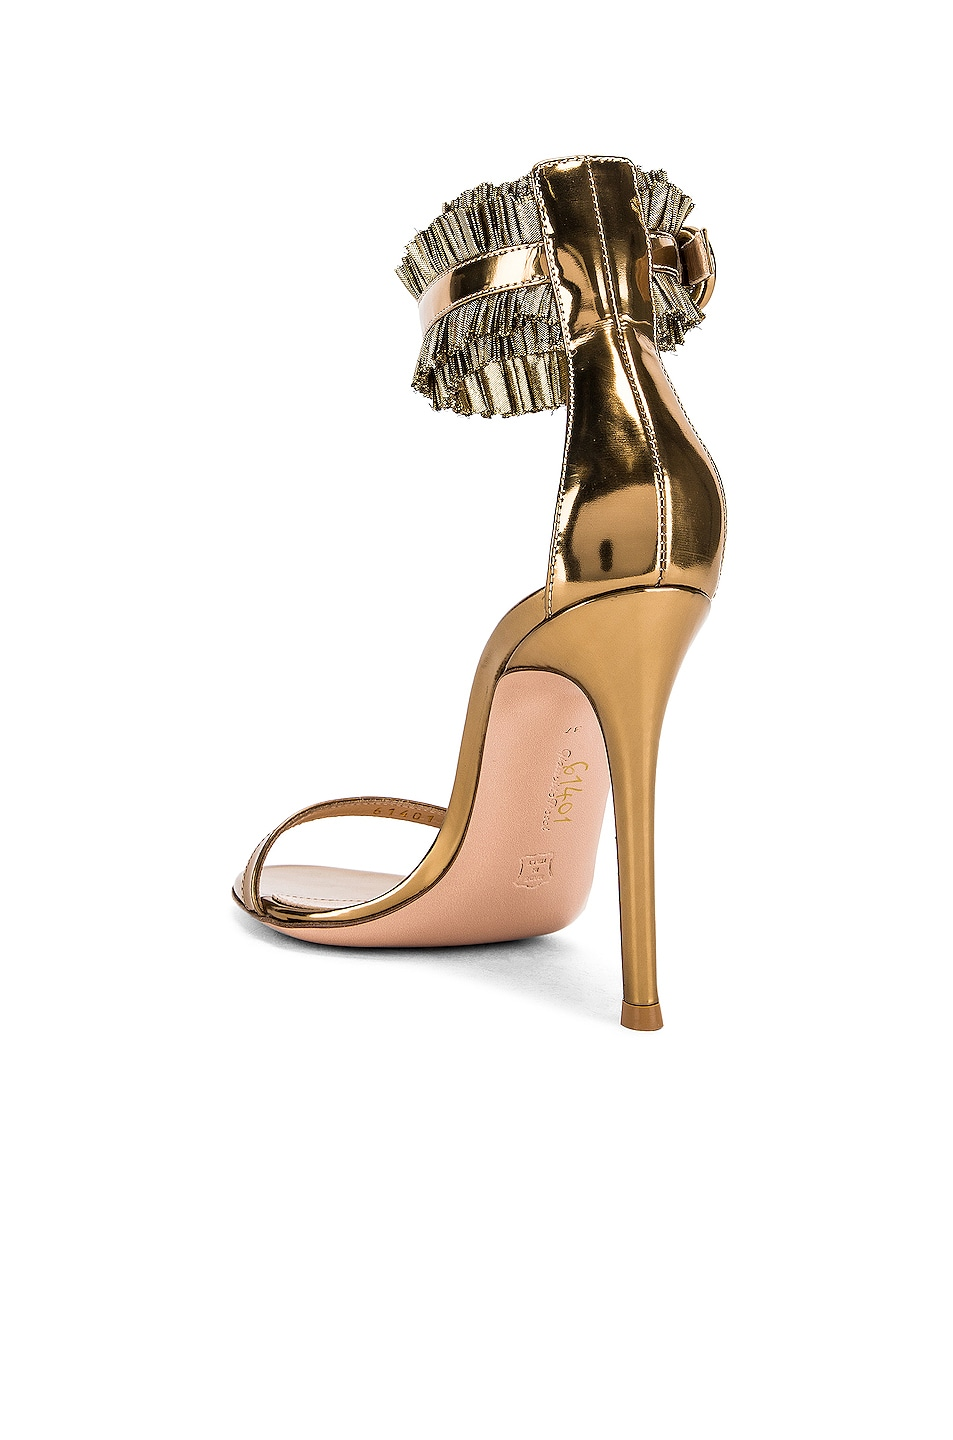 Image 3 of Gianvito Rossi Ruffle Ankle Strap Heels in Gold